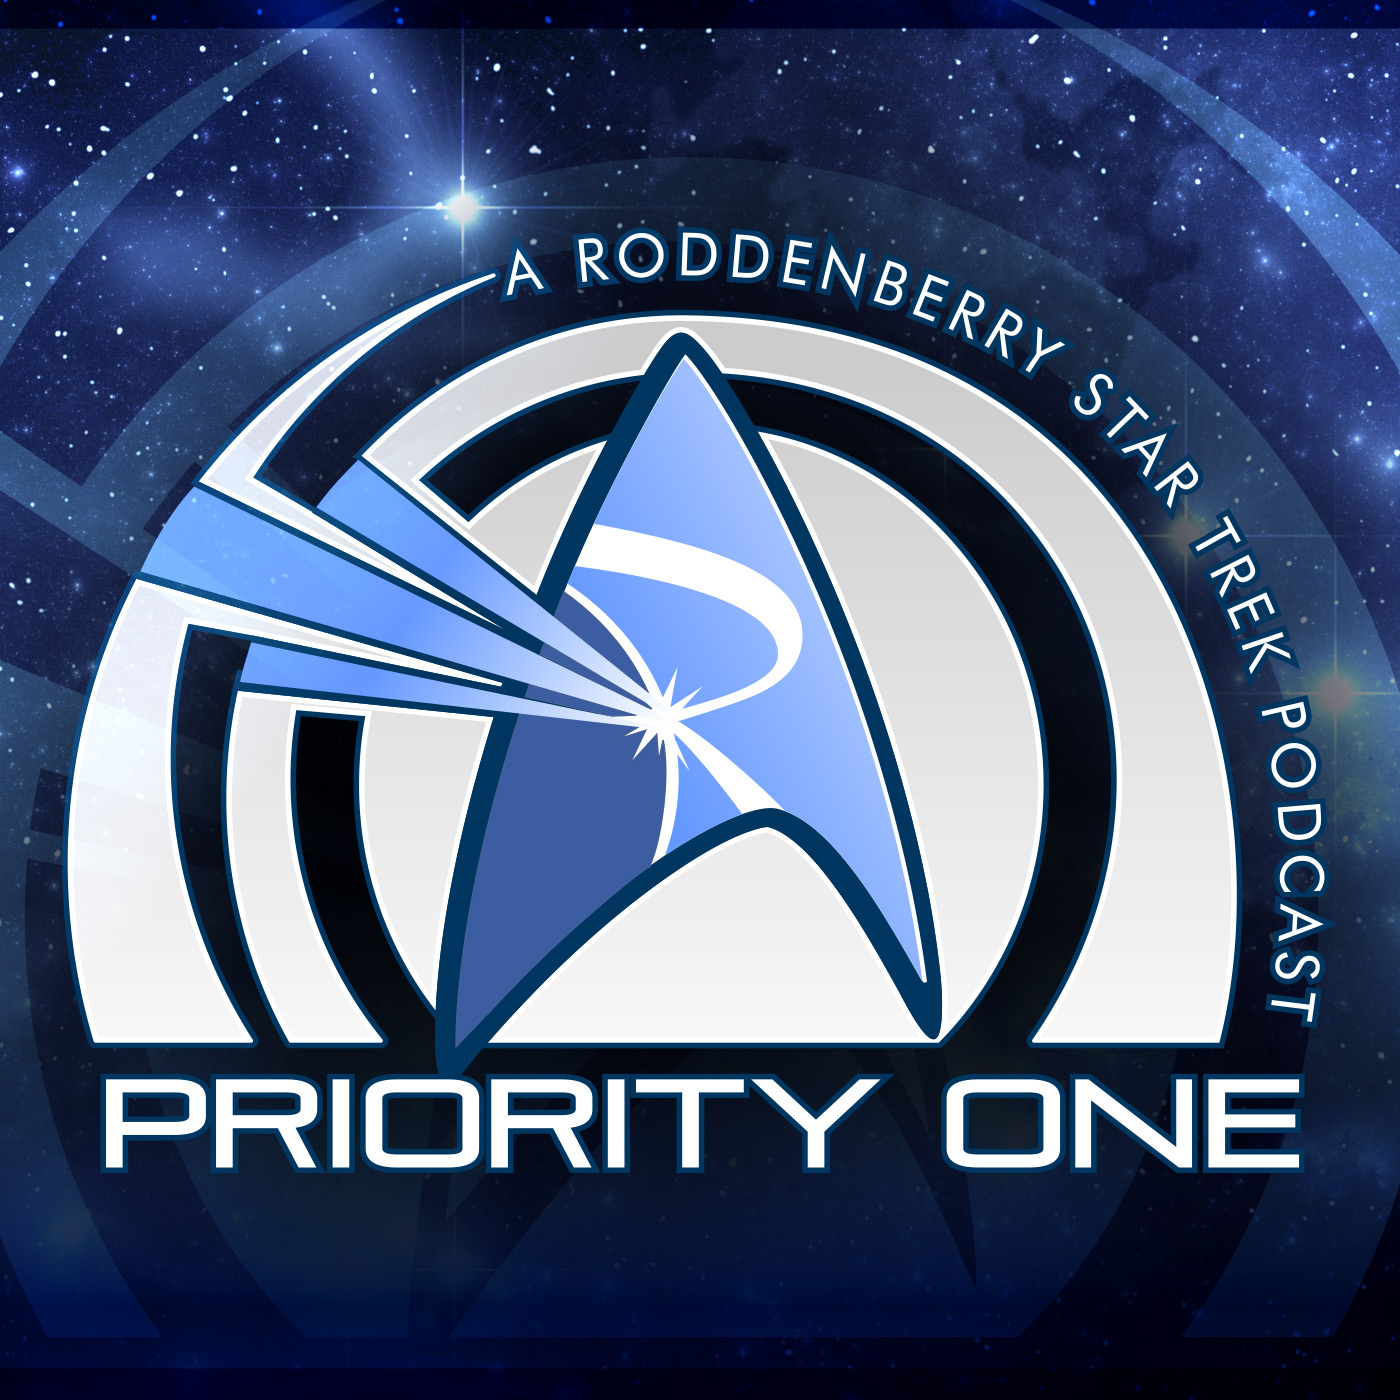 Artwork for 409 - Orange is the Loneliest Color   Priority One: A Roddenberry Star Trek Podcast